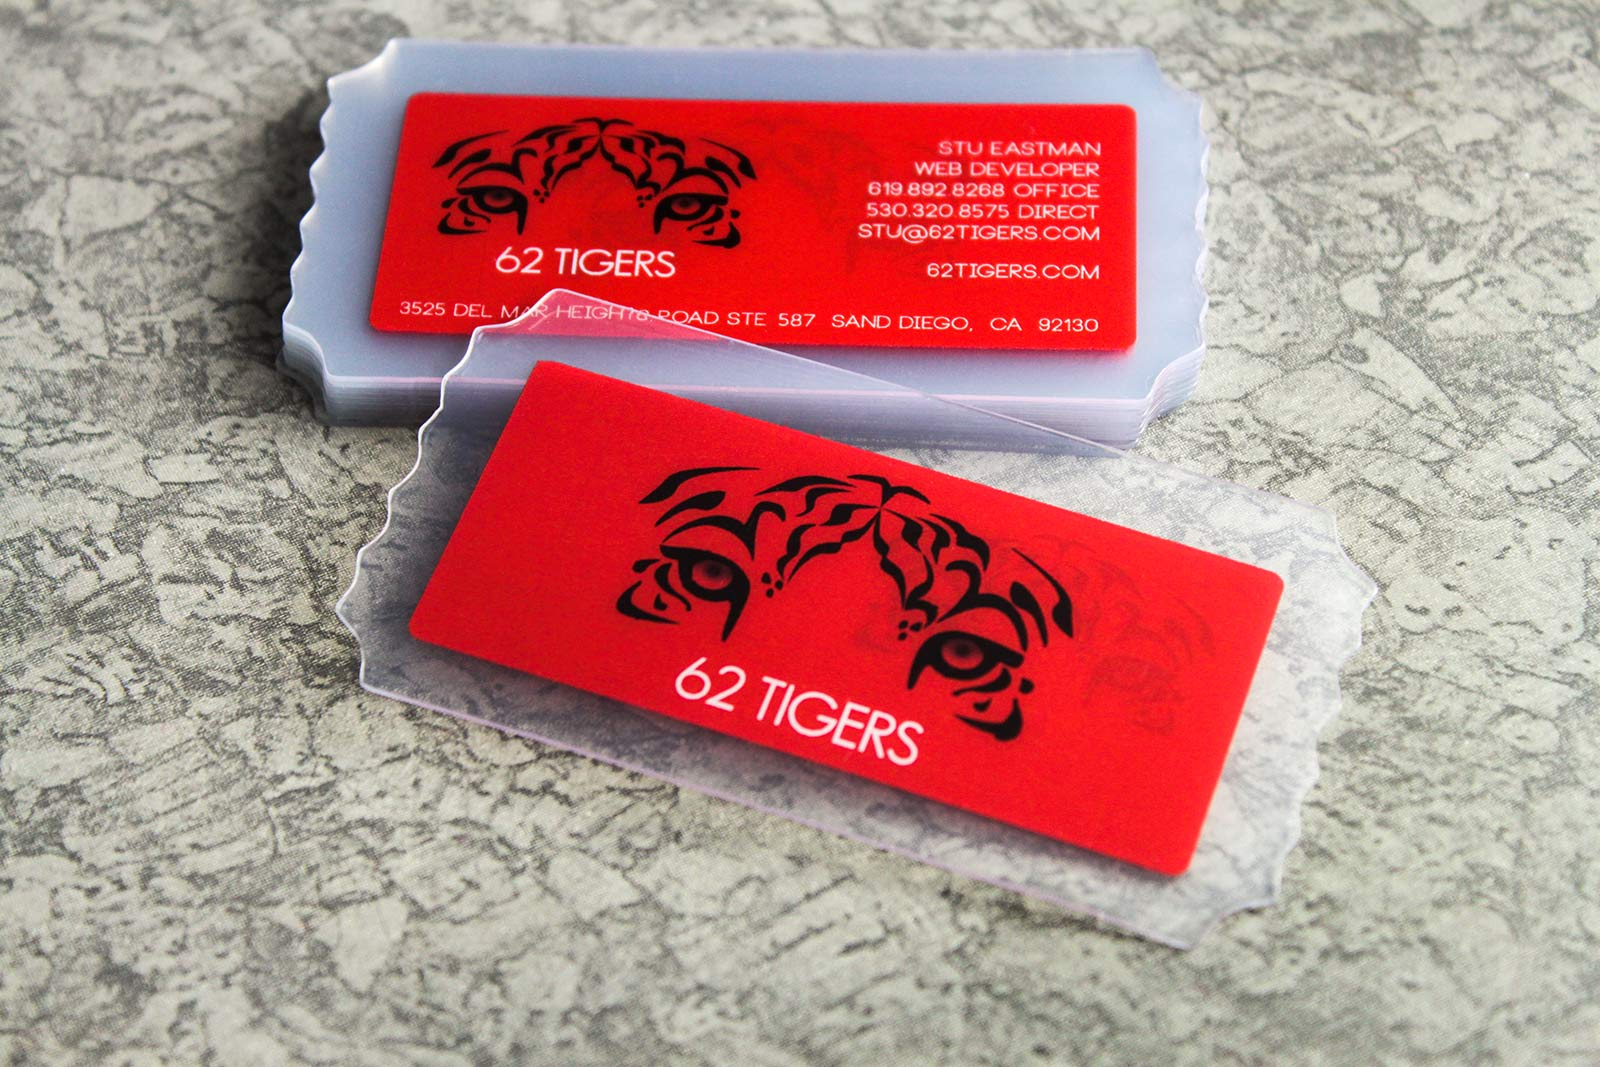 Design inspiration blog plastic printers cole 4 ways to make your business card stand out colourmoves